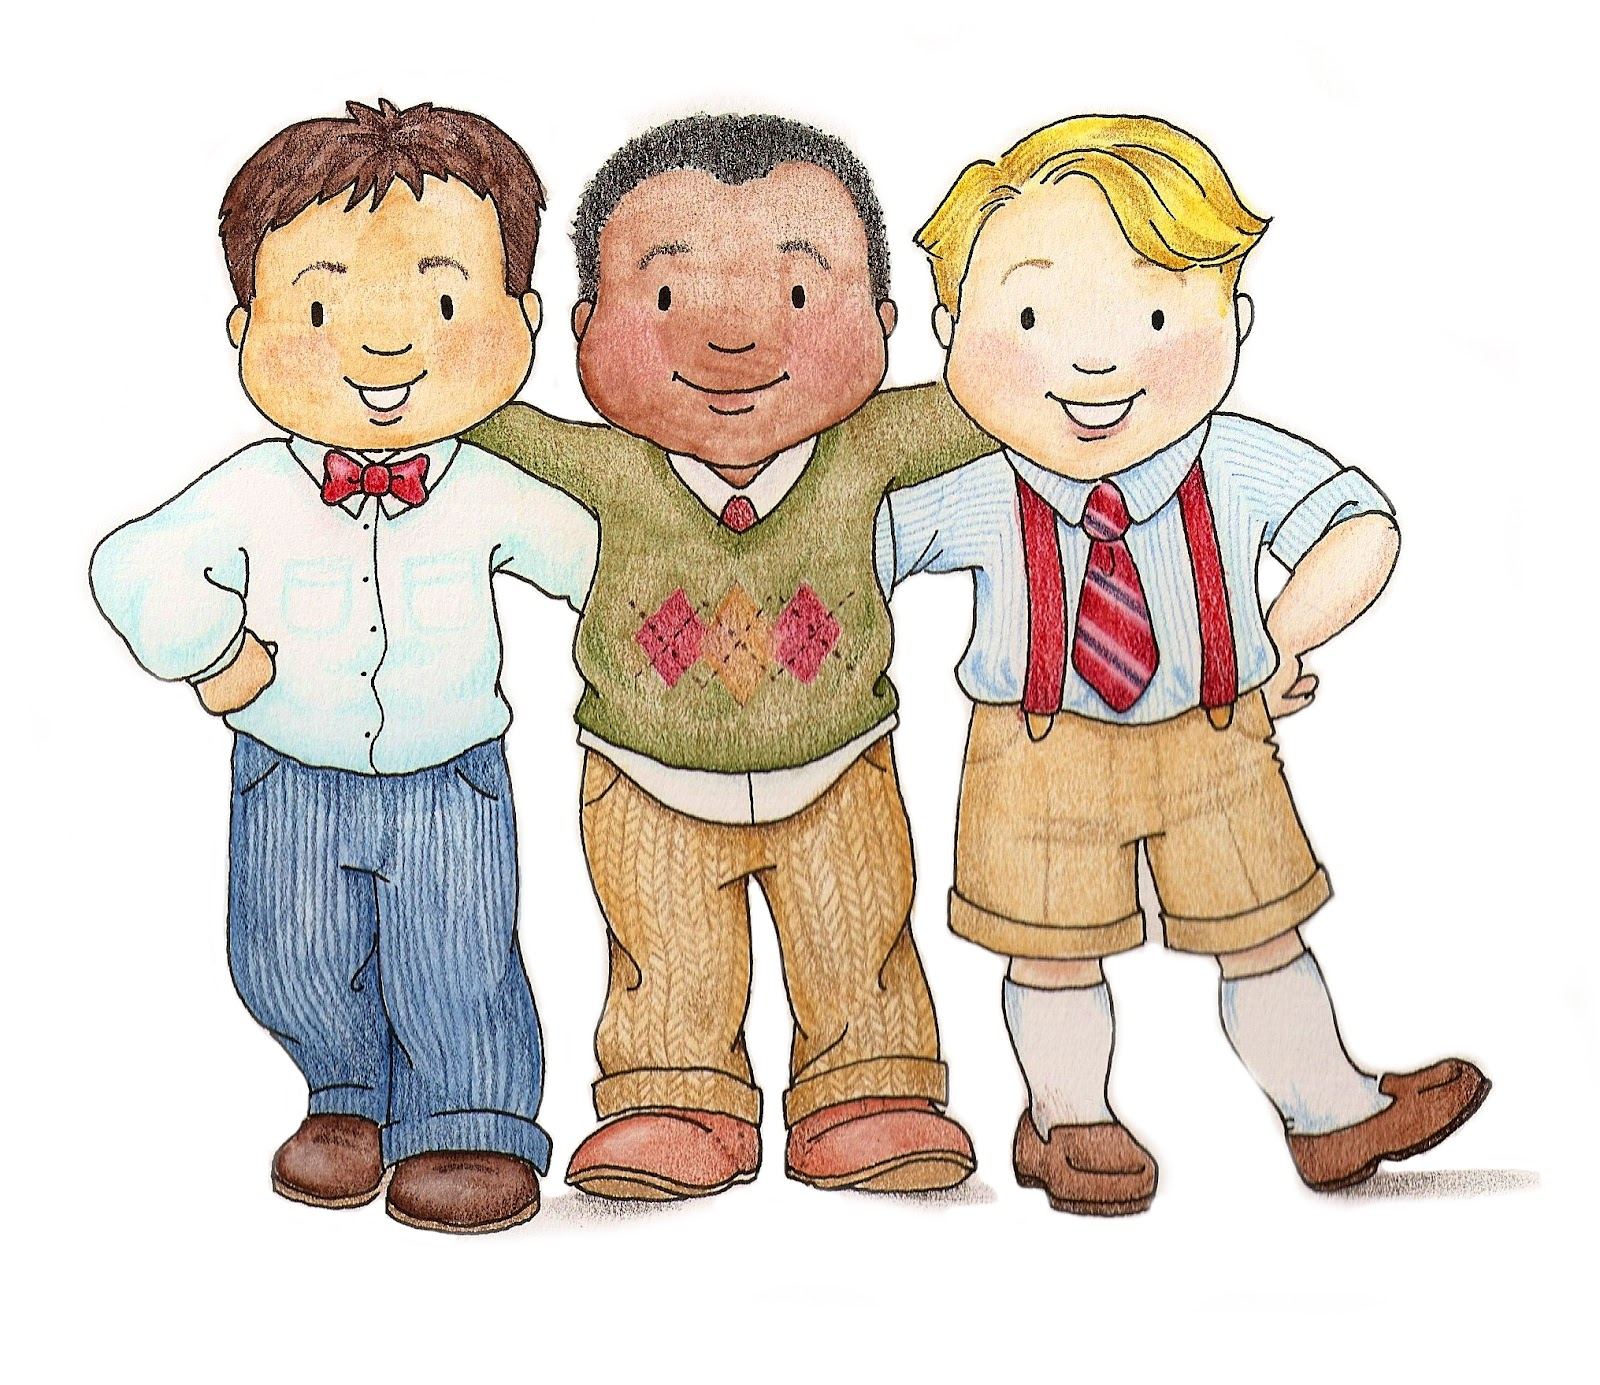 Boys clipart. Susan fitch design primary